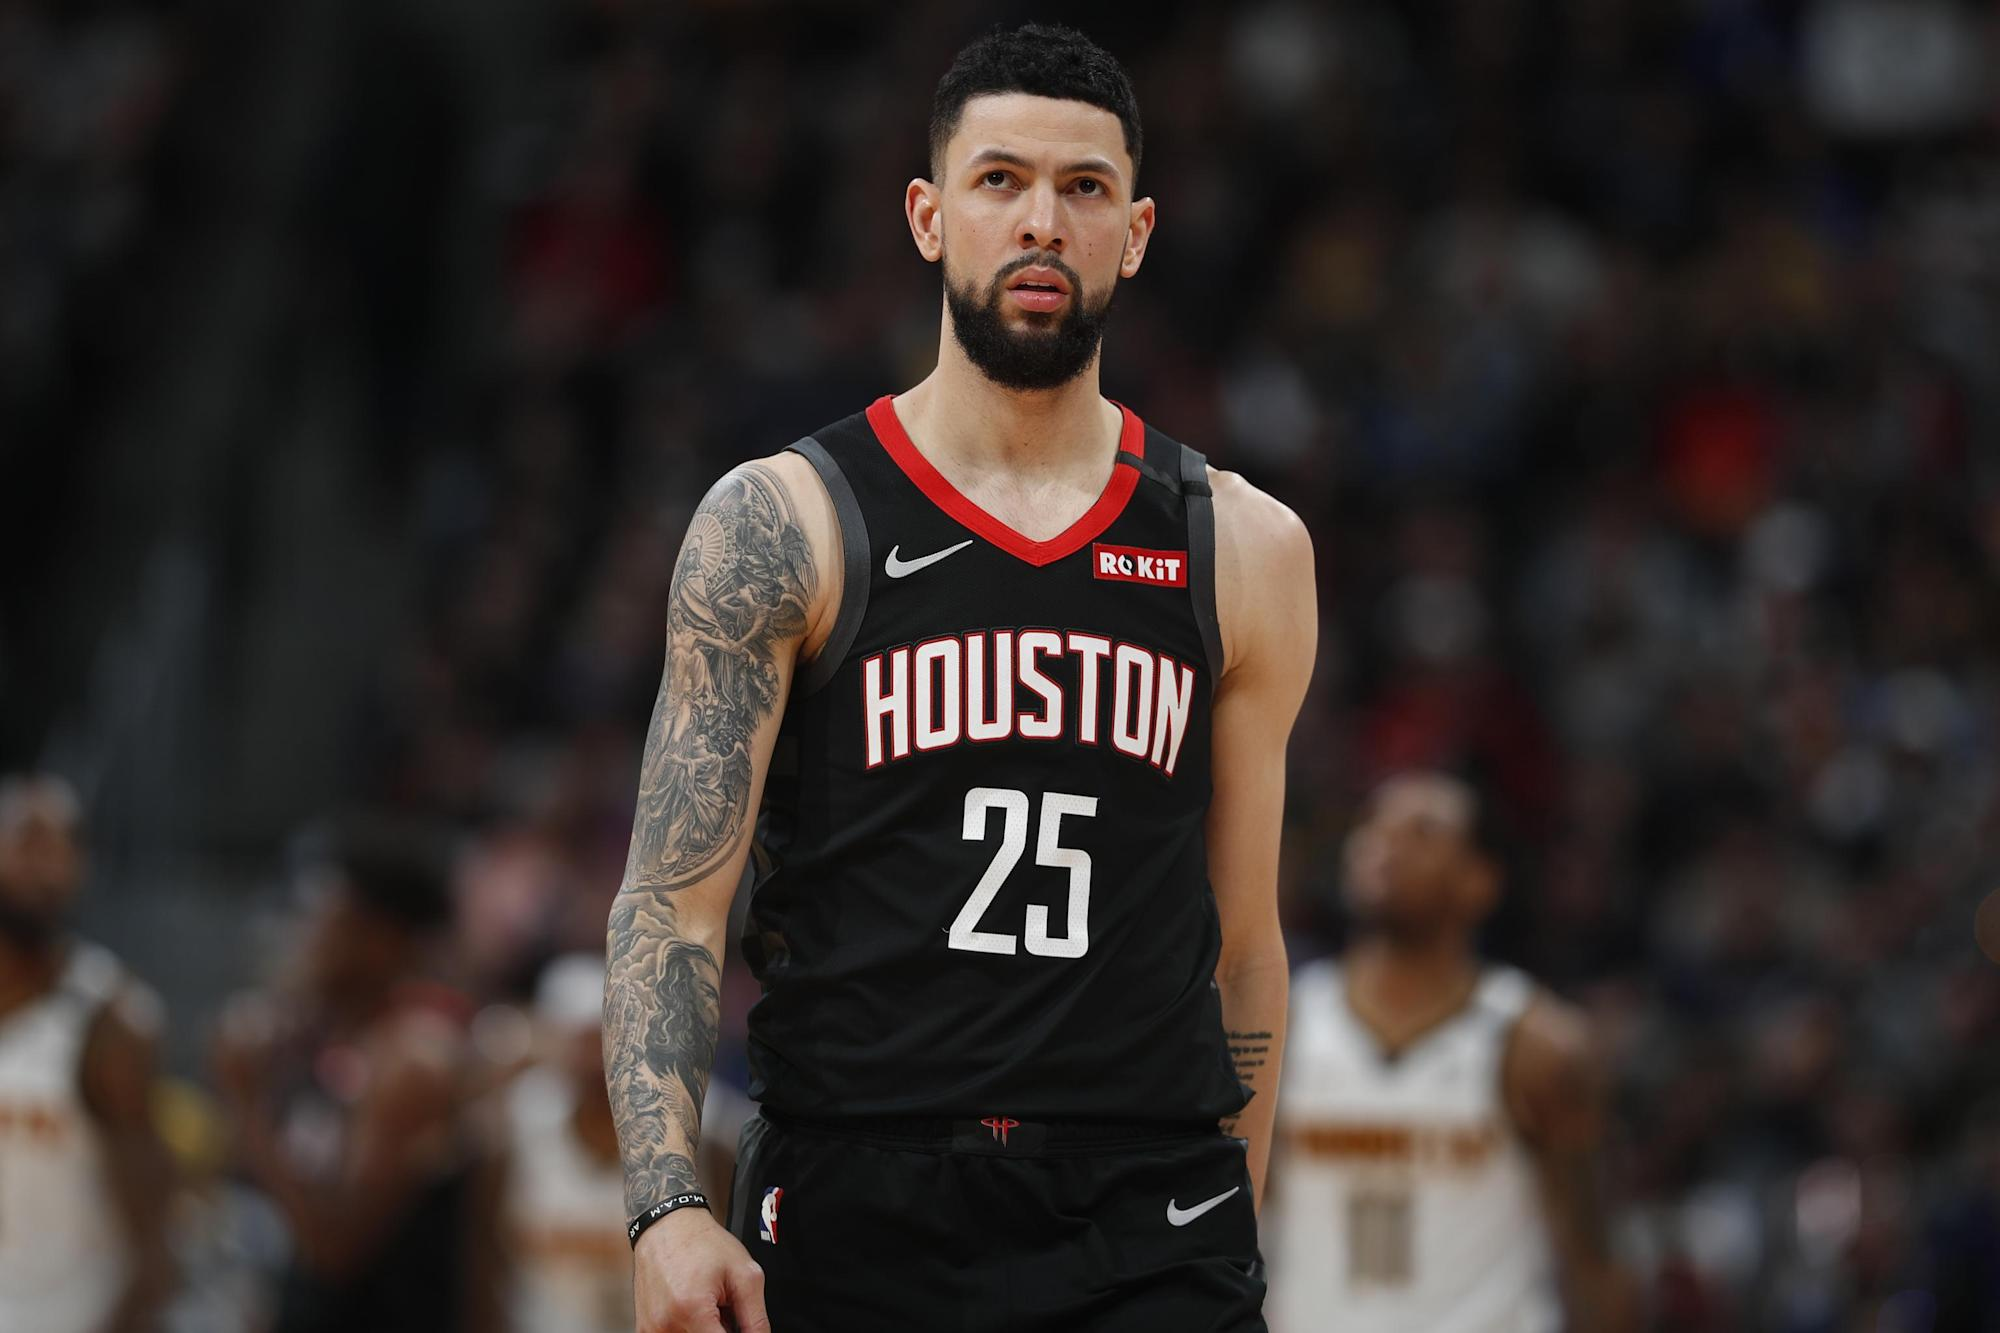 Austin Rivers, Knicks Reportedly Agree to 3-Year, $10M Contract in Free Agency